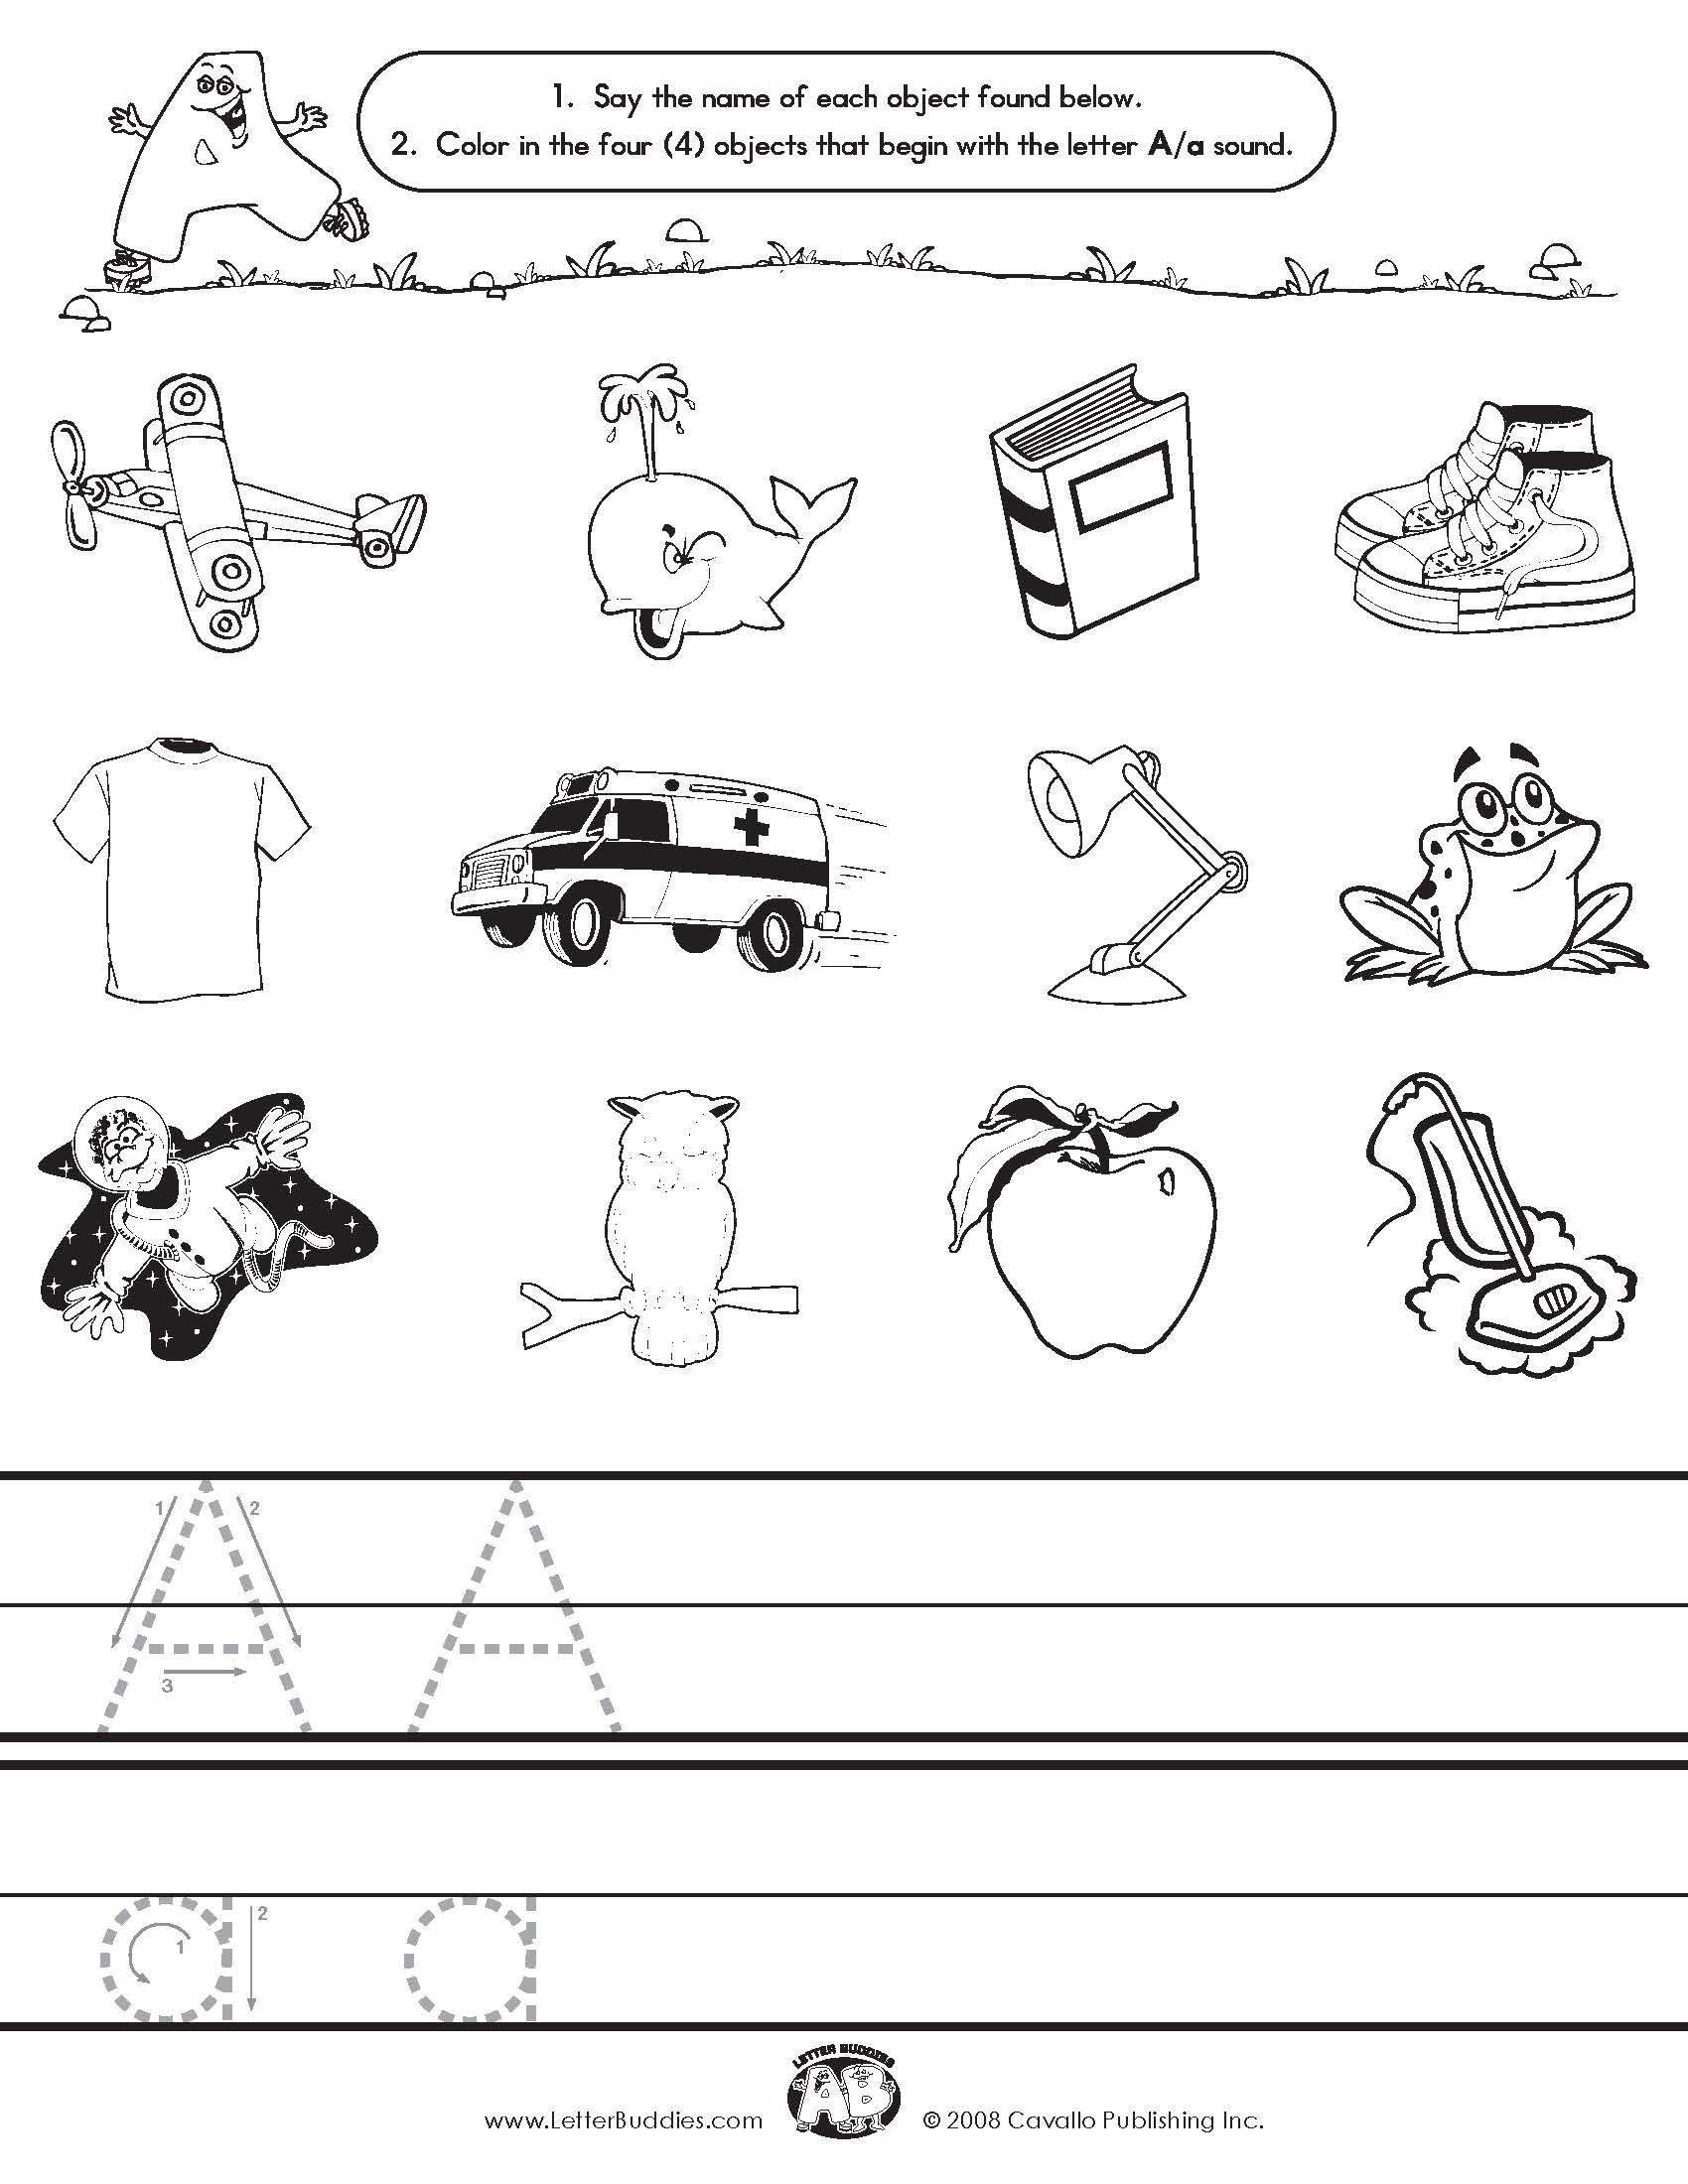 Worksheet Sounds Worksheets initial sound worksheets letter buddies sounds worksheet a